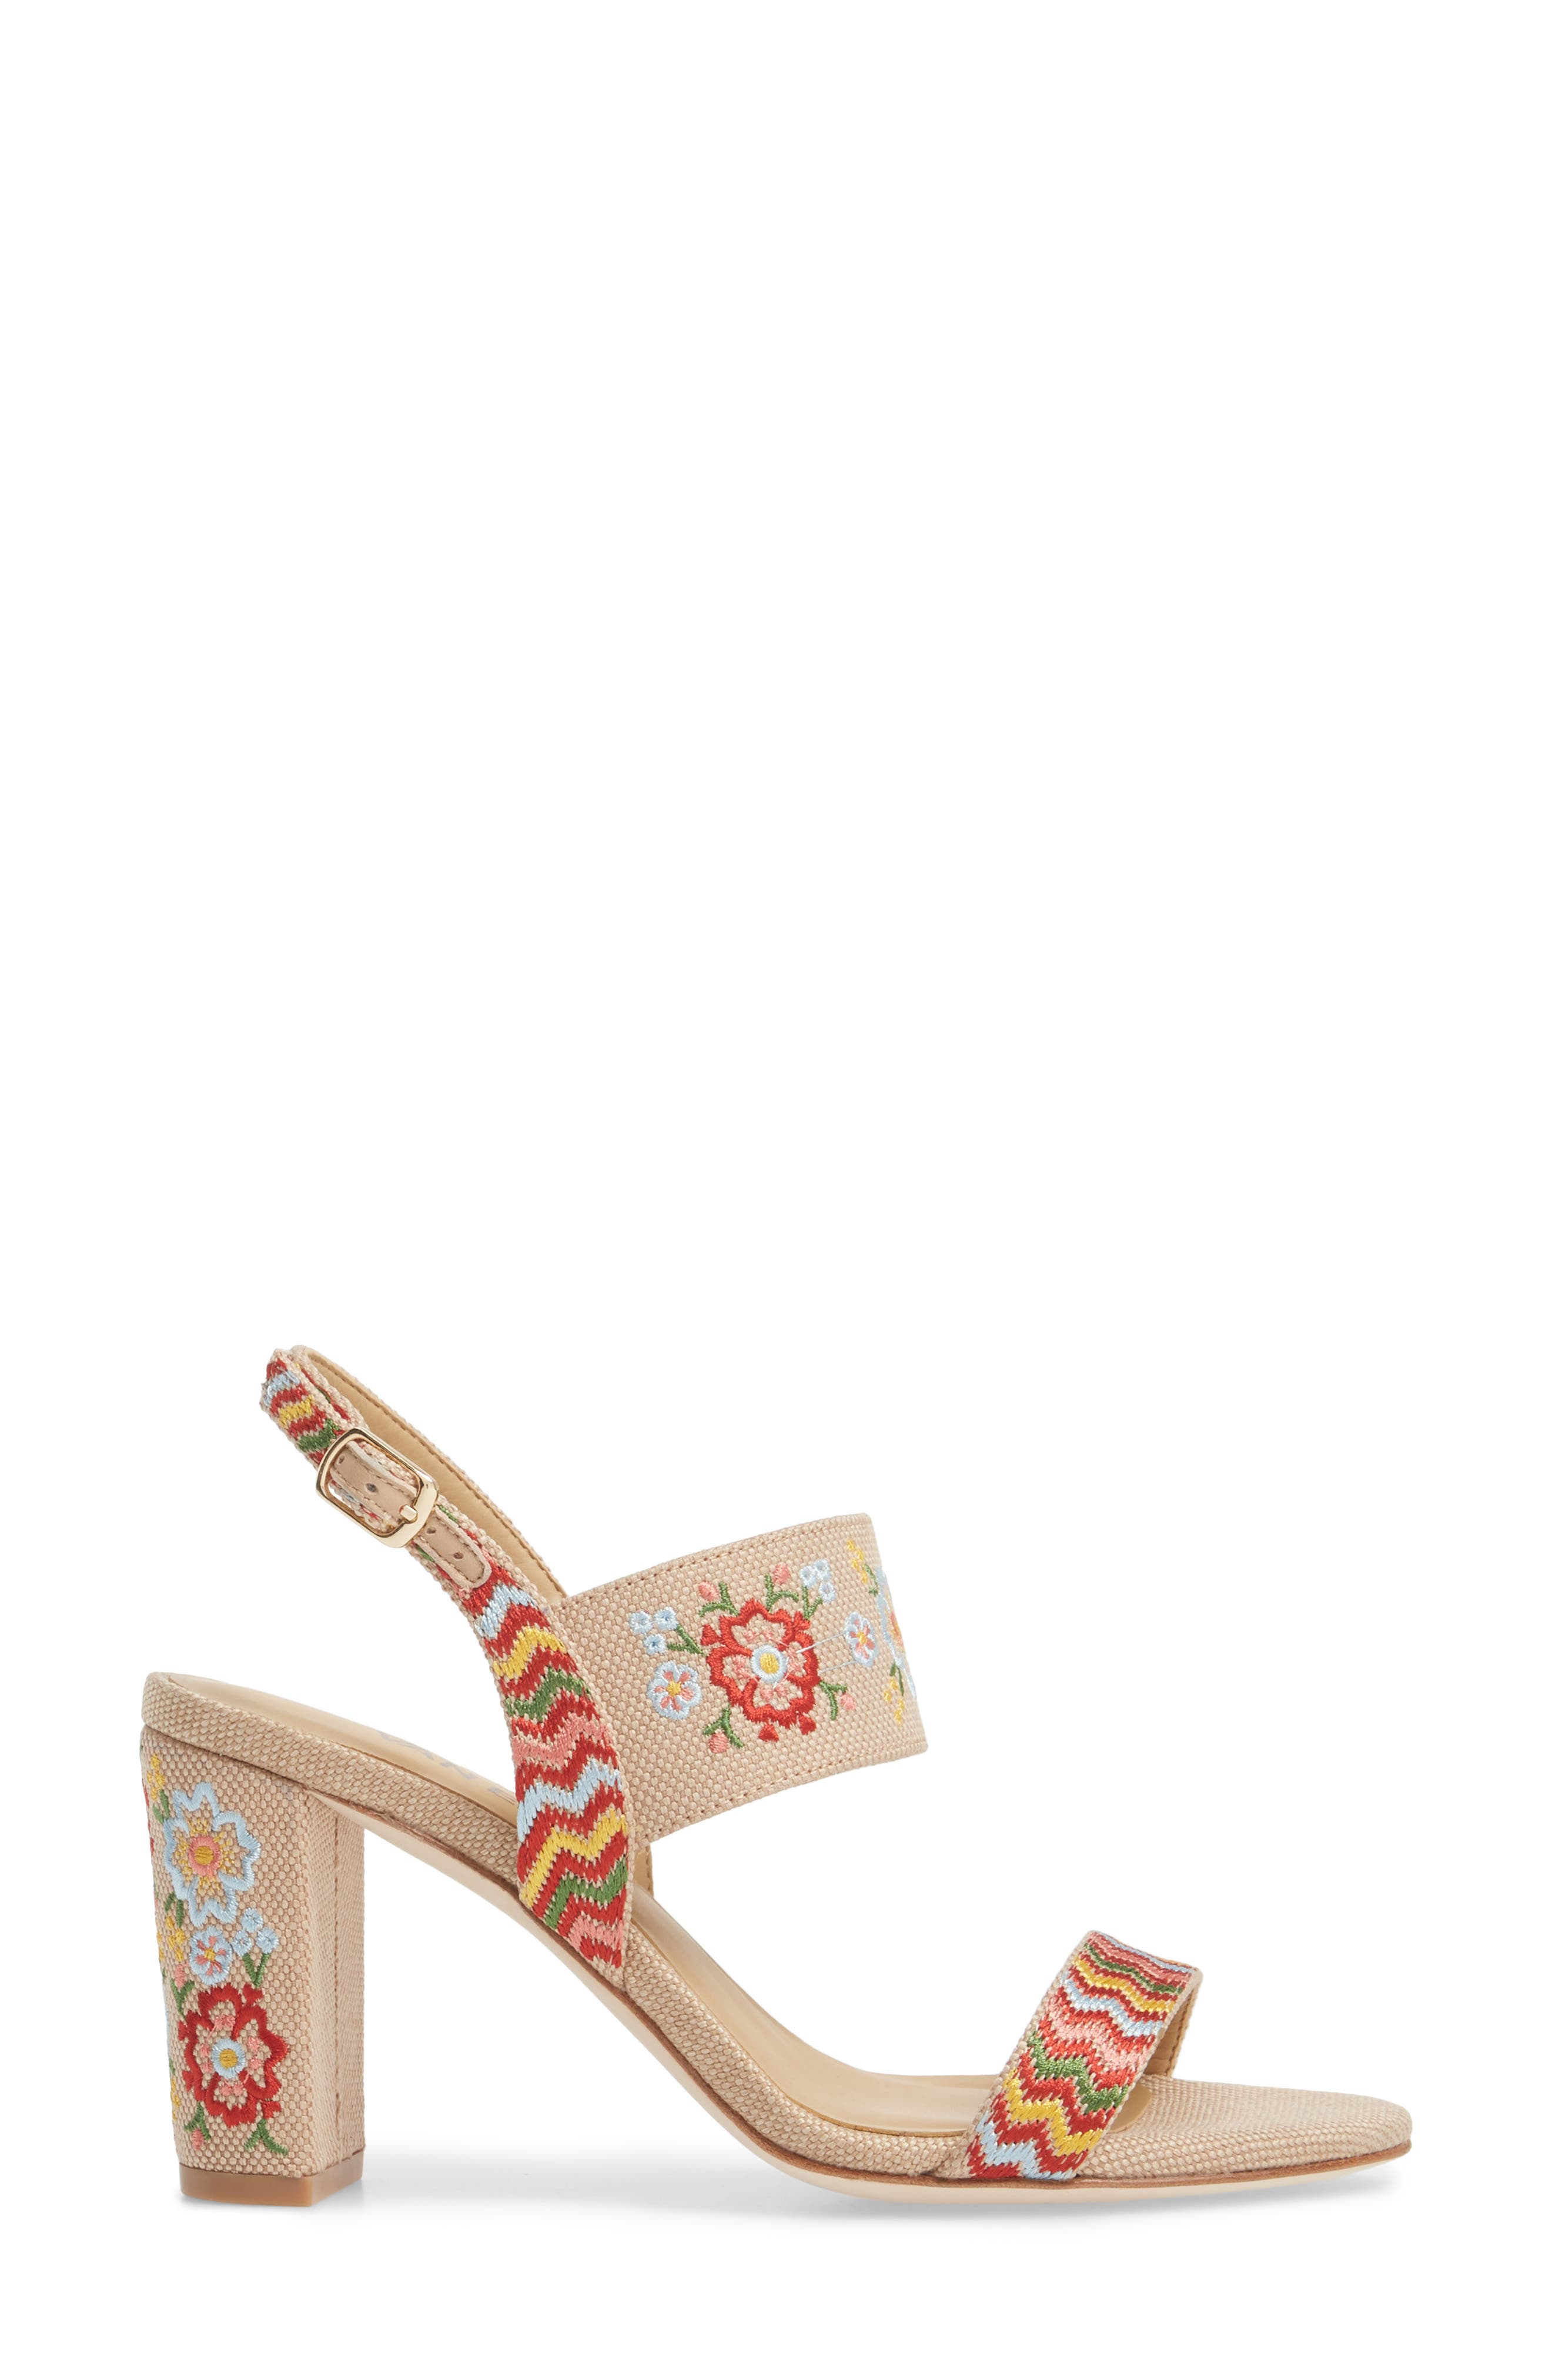 Biene Slingback Sandal,                             Alternate thumbnail 3, color,                             250